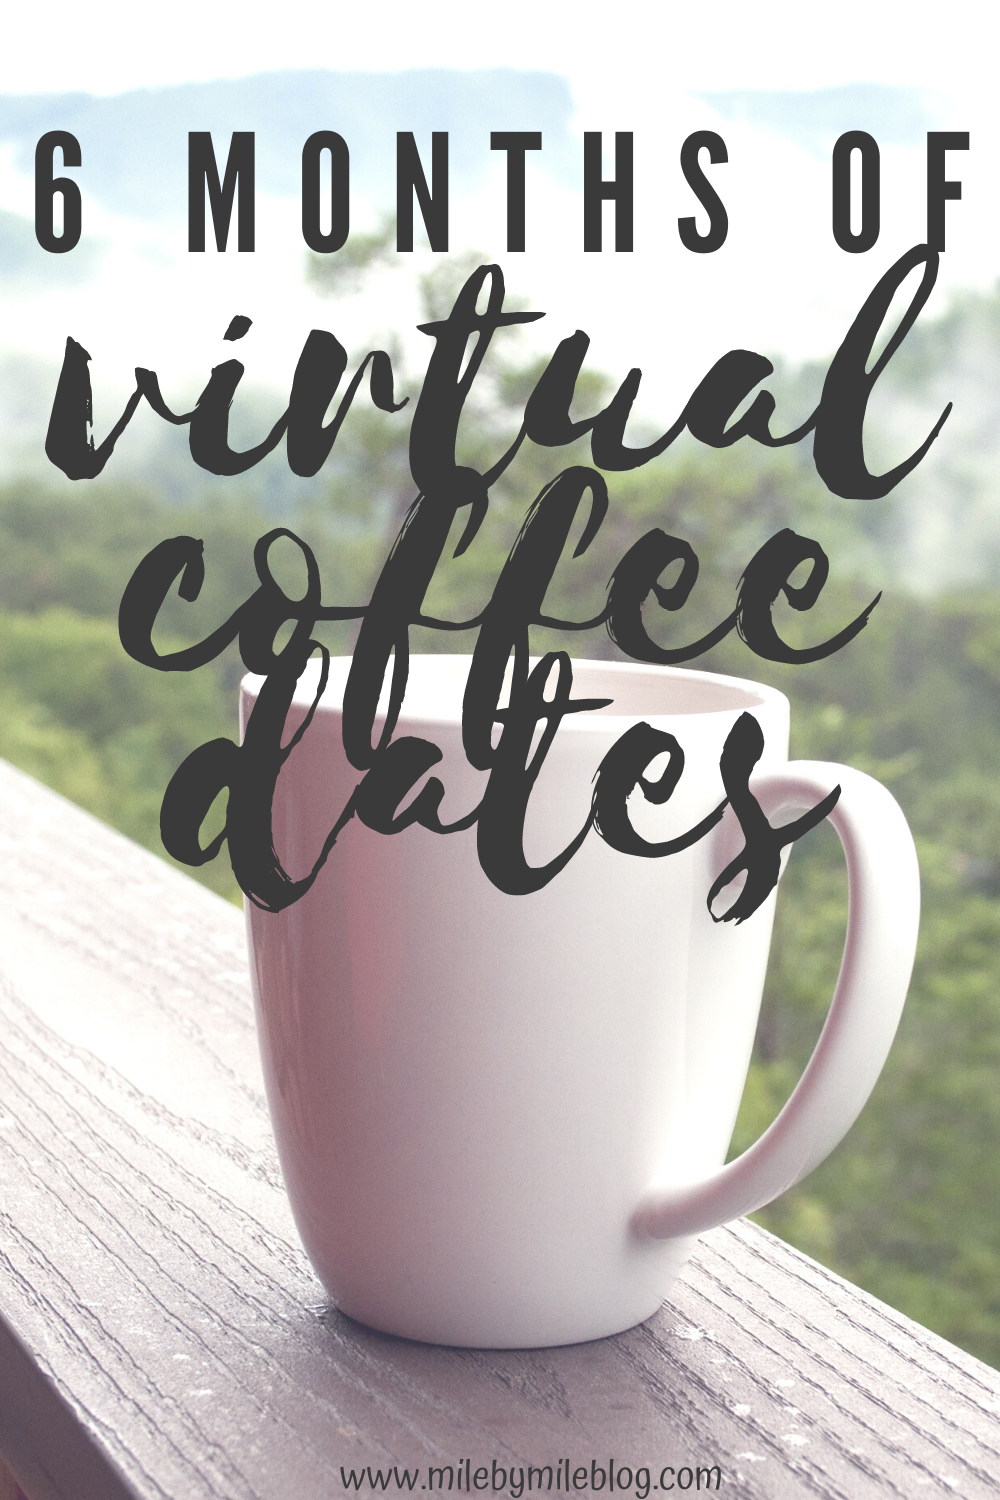 The past 6 months of 2020 have been a rollercoaster, and while we may not always have virtual coffee dates it seems we have had virtual everything this year. Here are some of my thoughts about what has been going this month.